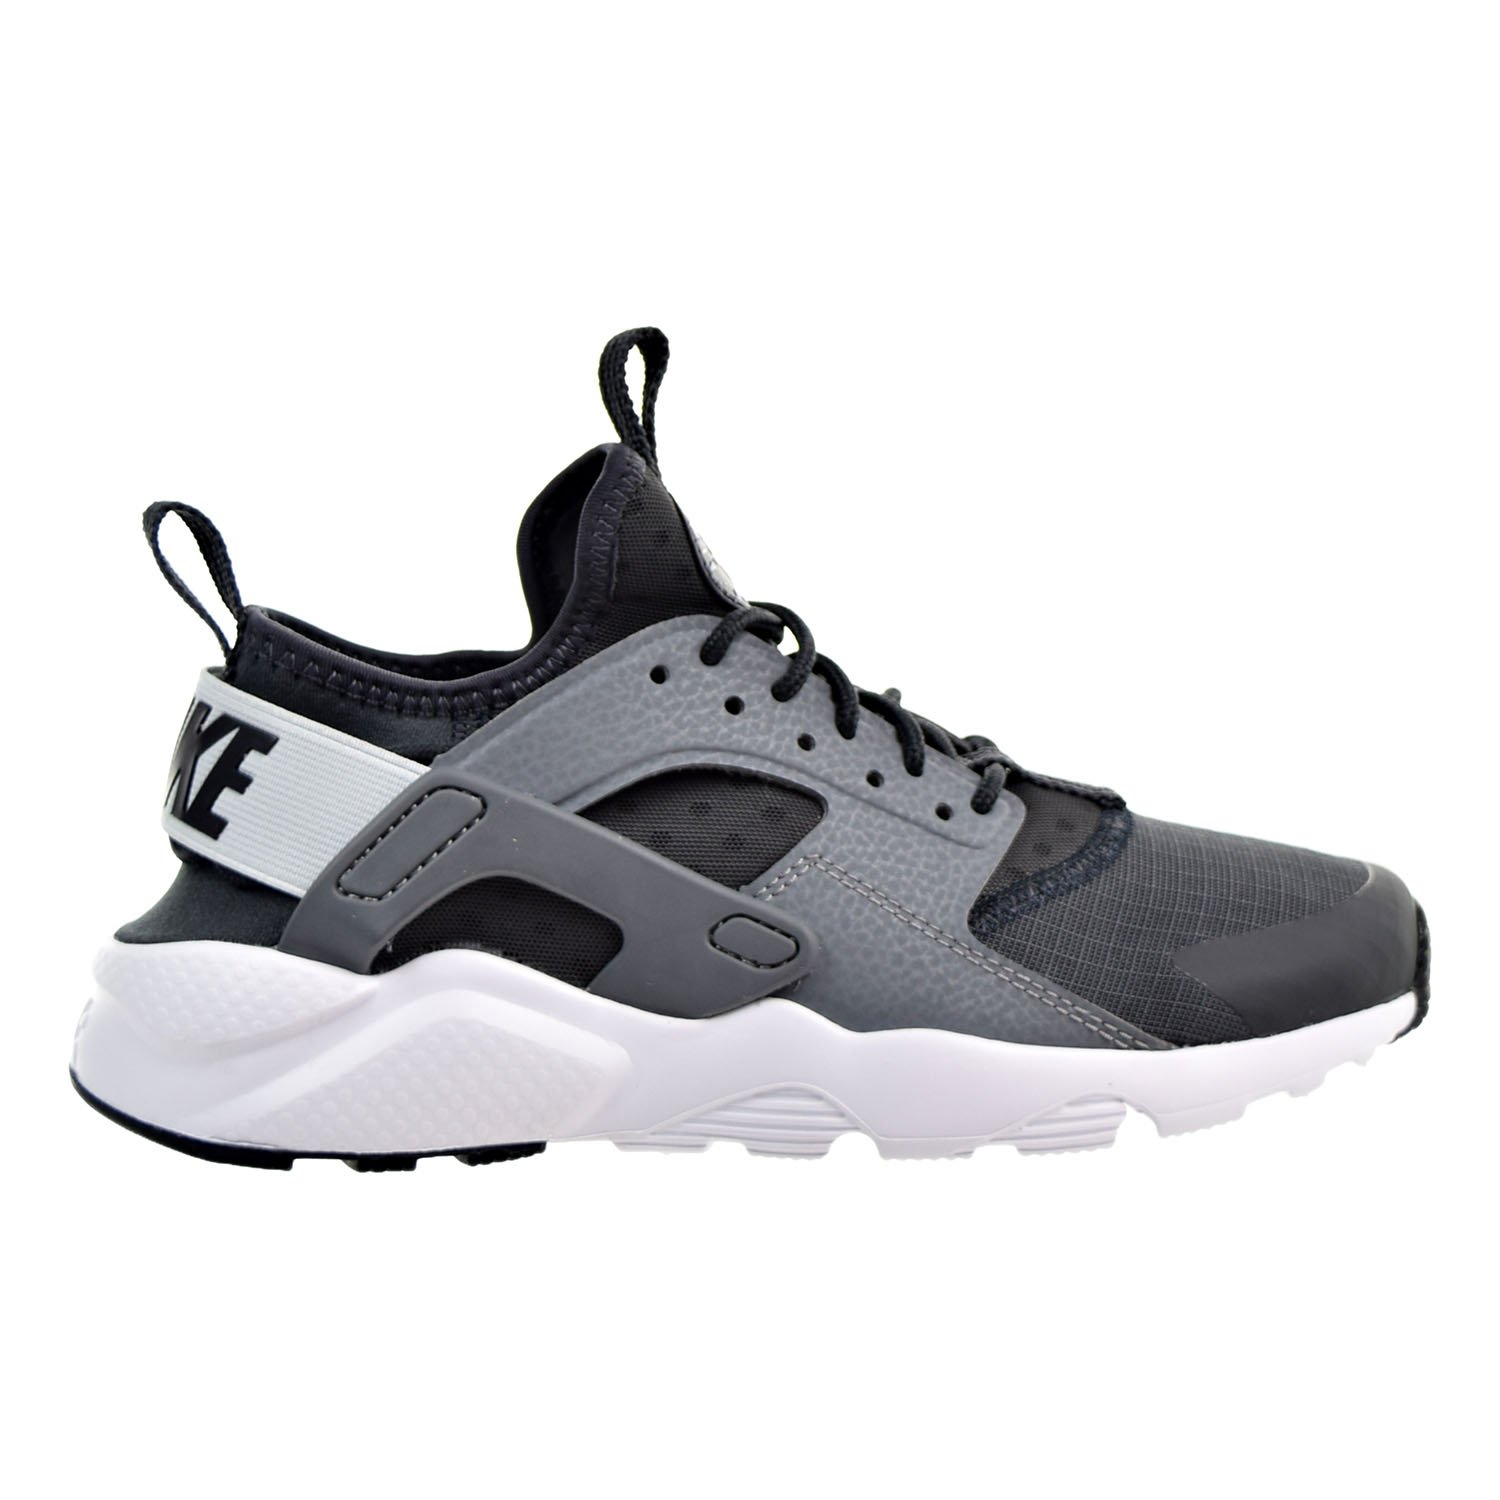 sports shoes be3f7 7c731 Nike Air Huarache Ultra Boys Shoe Anthracite Cool Grey White Pure Platinum  847569-008 (6. 5 M US)  Buy Online at Low Prices in India - Amazon.in